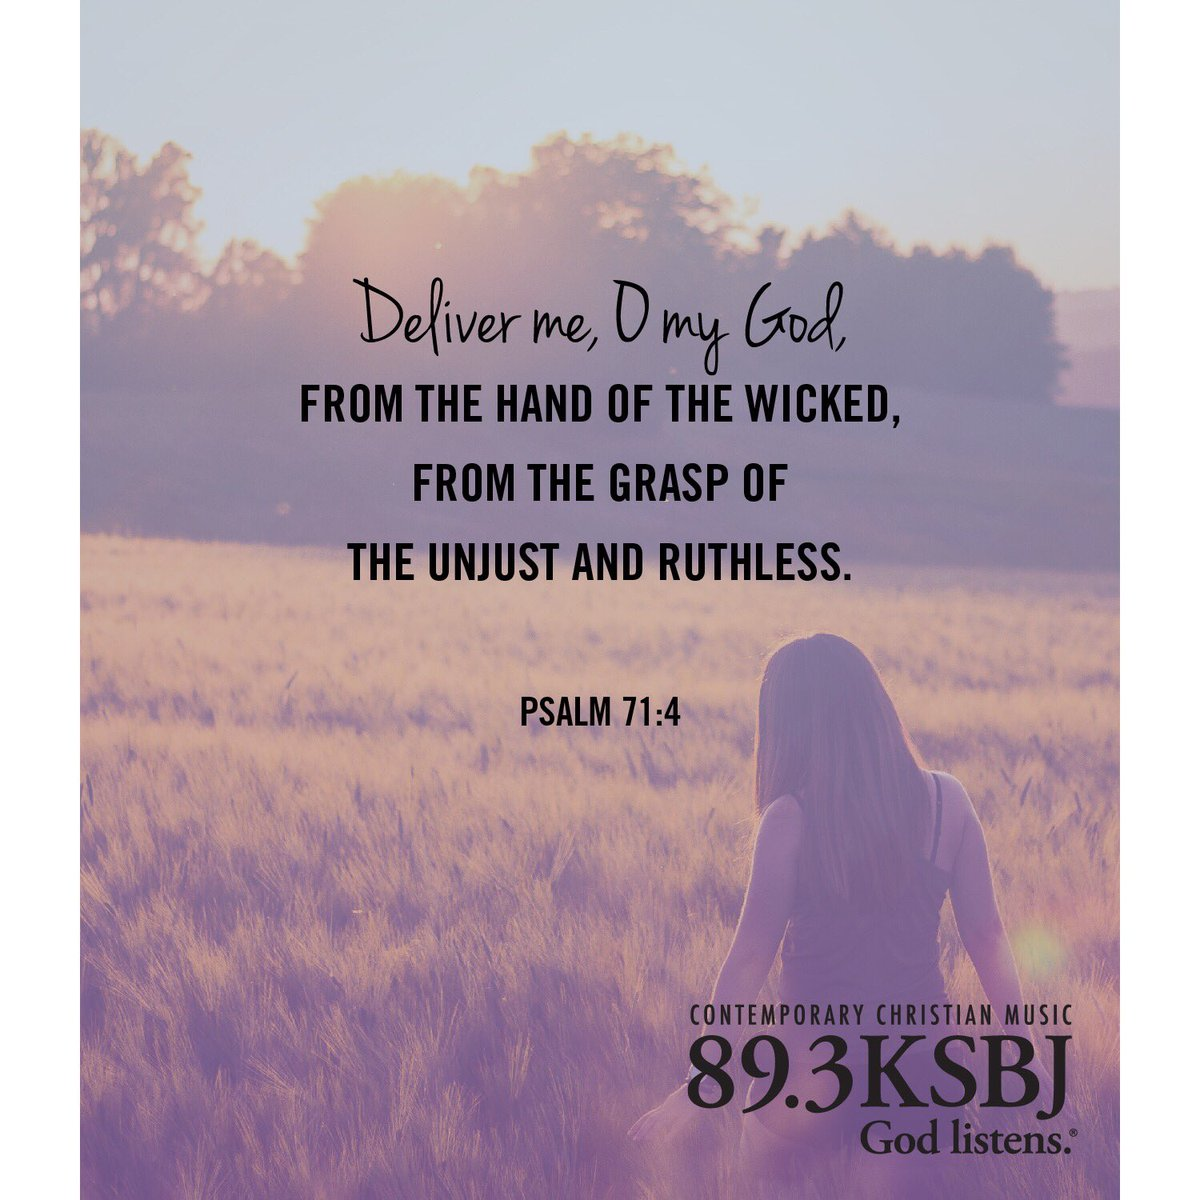 ksbj on twitter lord be my defender psalm 71 4 ksbjdailyhope defender psalm 71 4 ksbjdailyhope